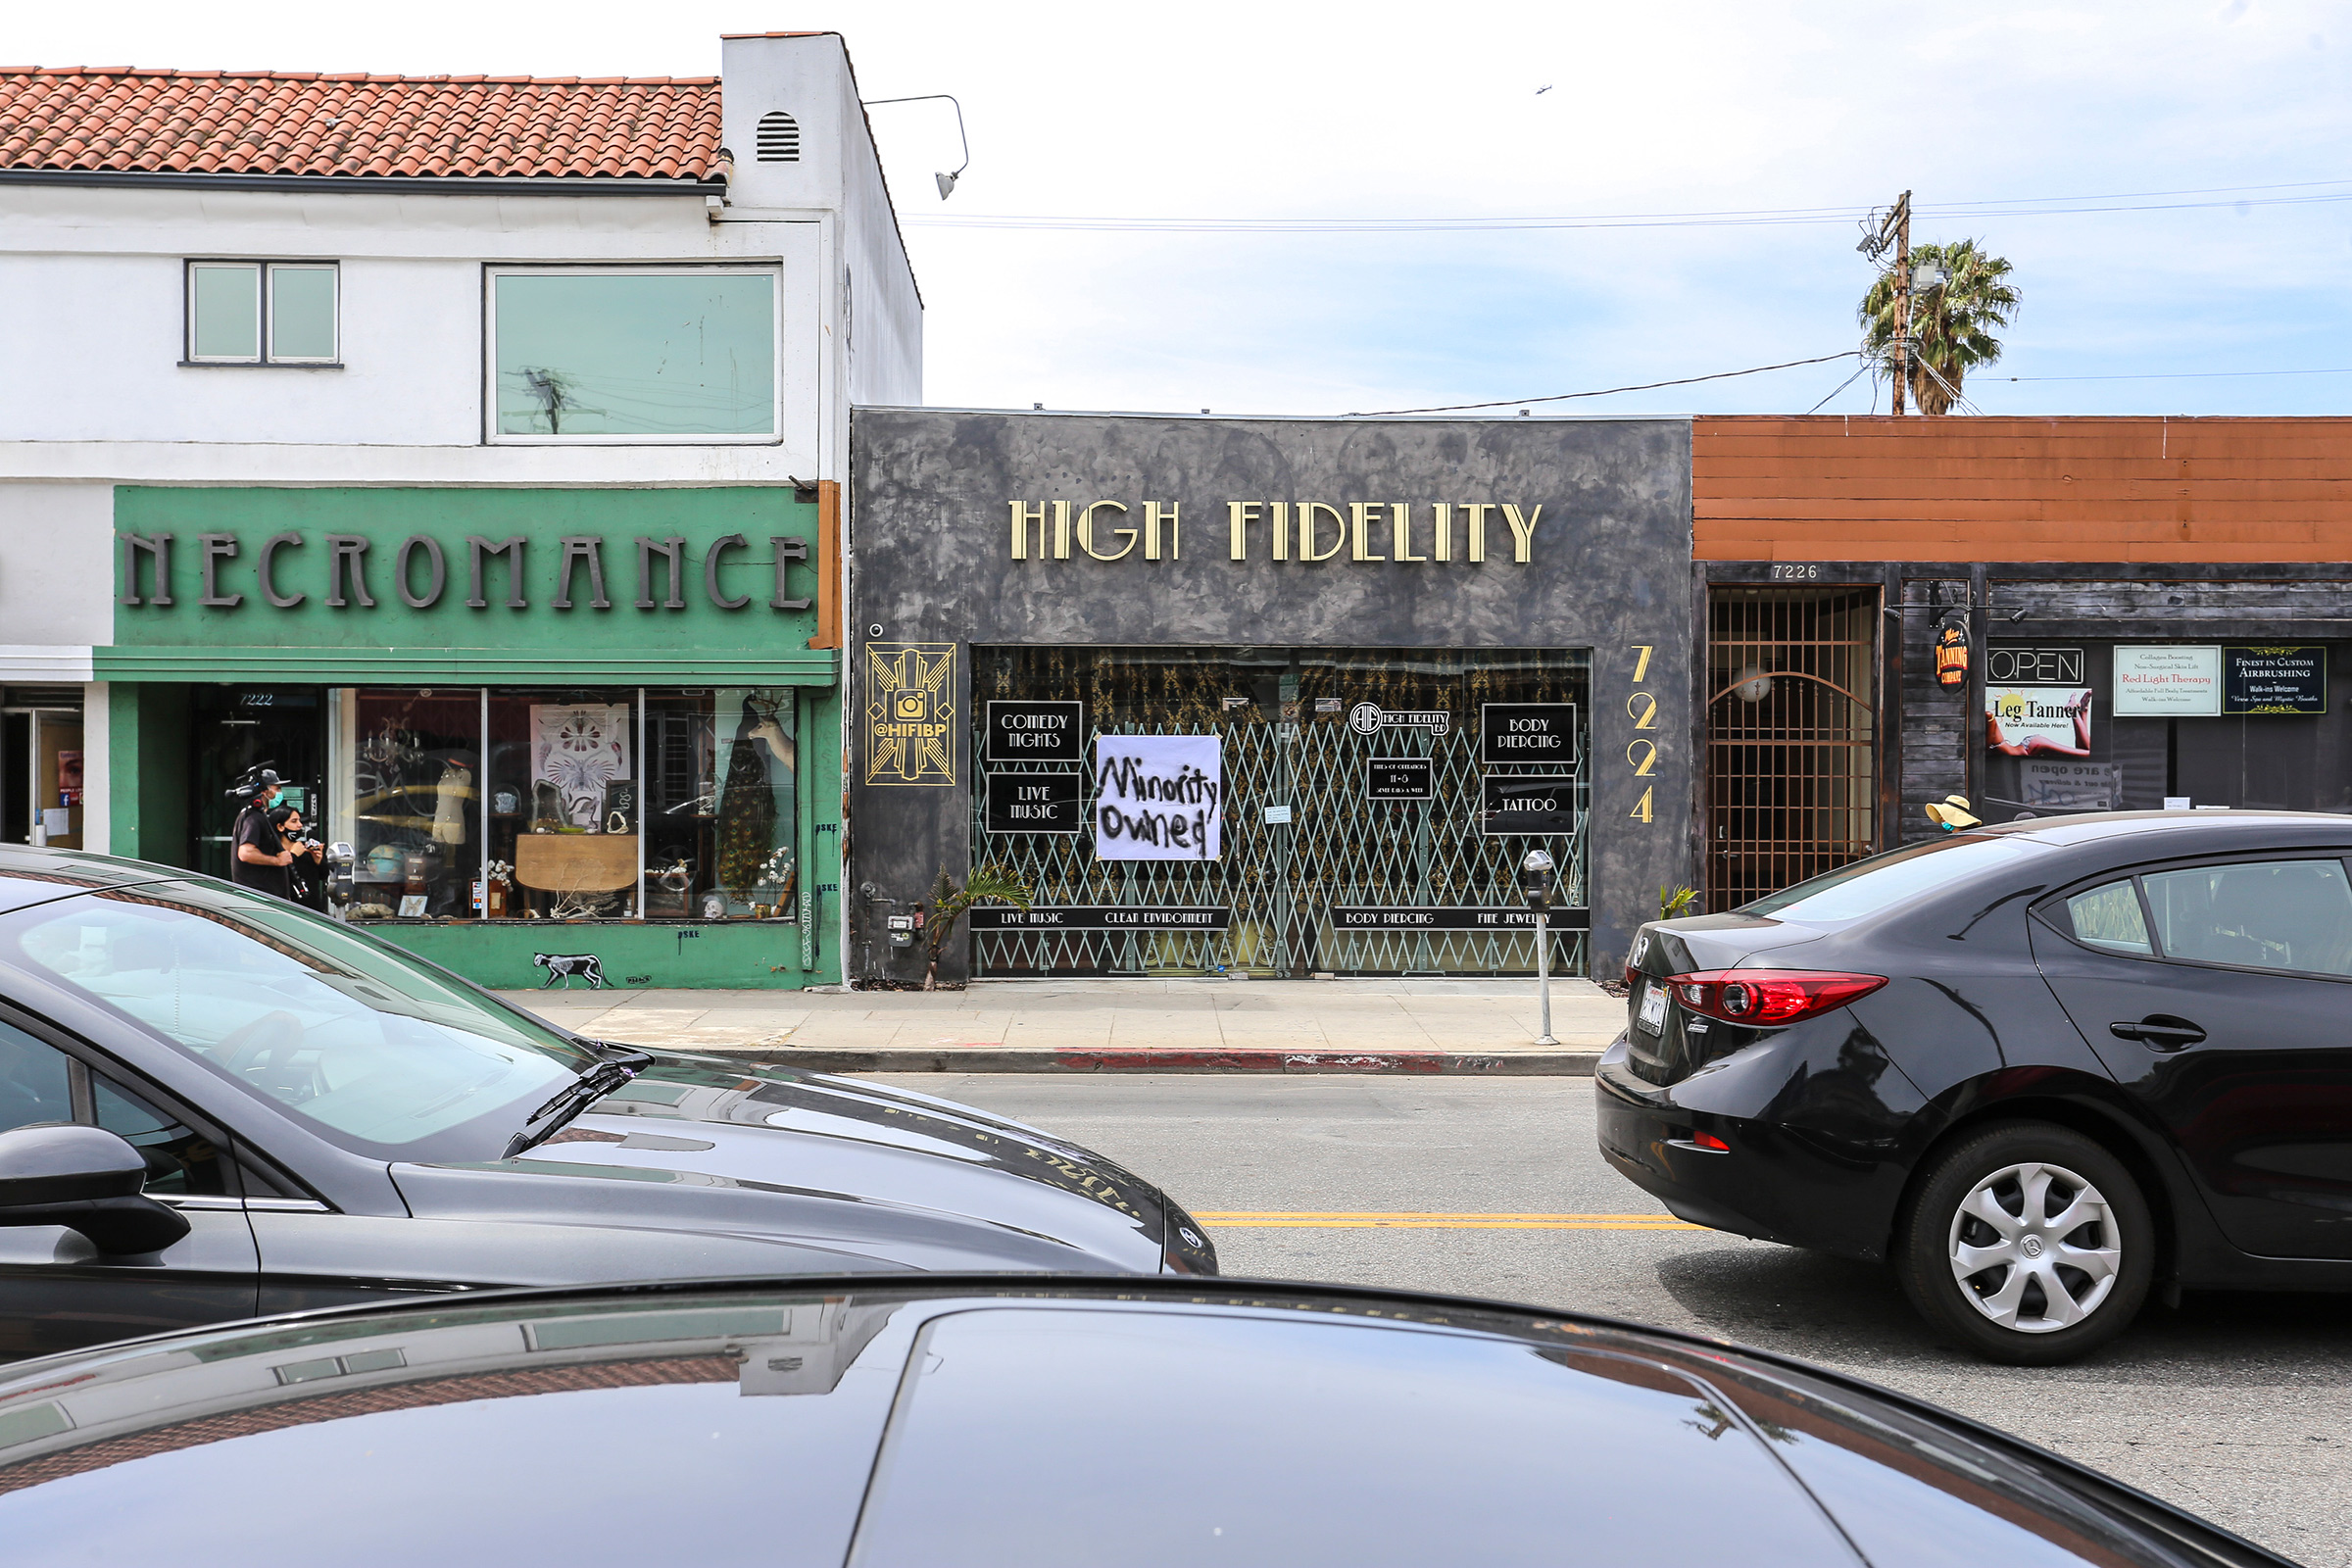 High Fidelity, a black owned business on Melrose Avenue, Los Angeles, displays a  Minority Owned  sign on May 31